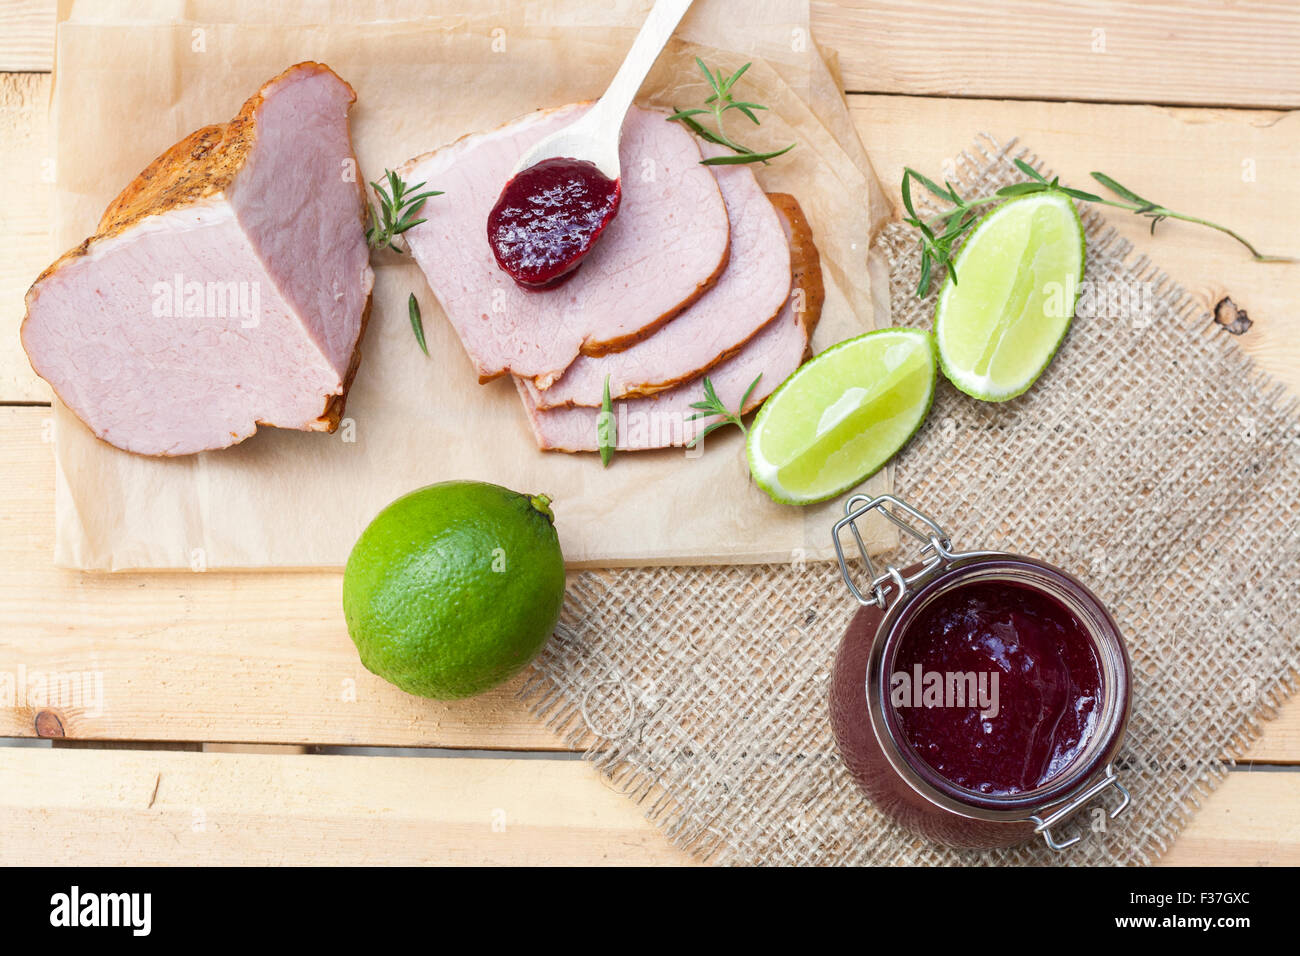 Home made organic cherry jam confiture, smoked meat, rosemary and lime on a wooden table - Stock Image